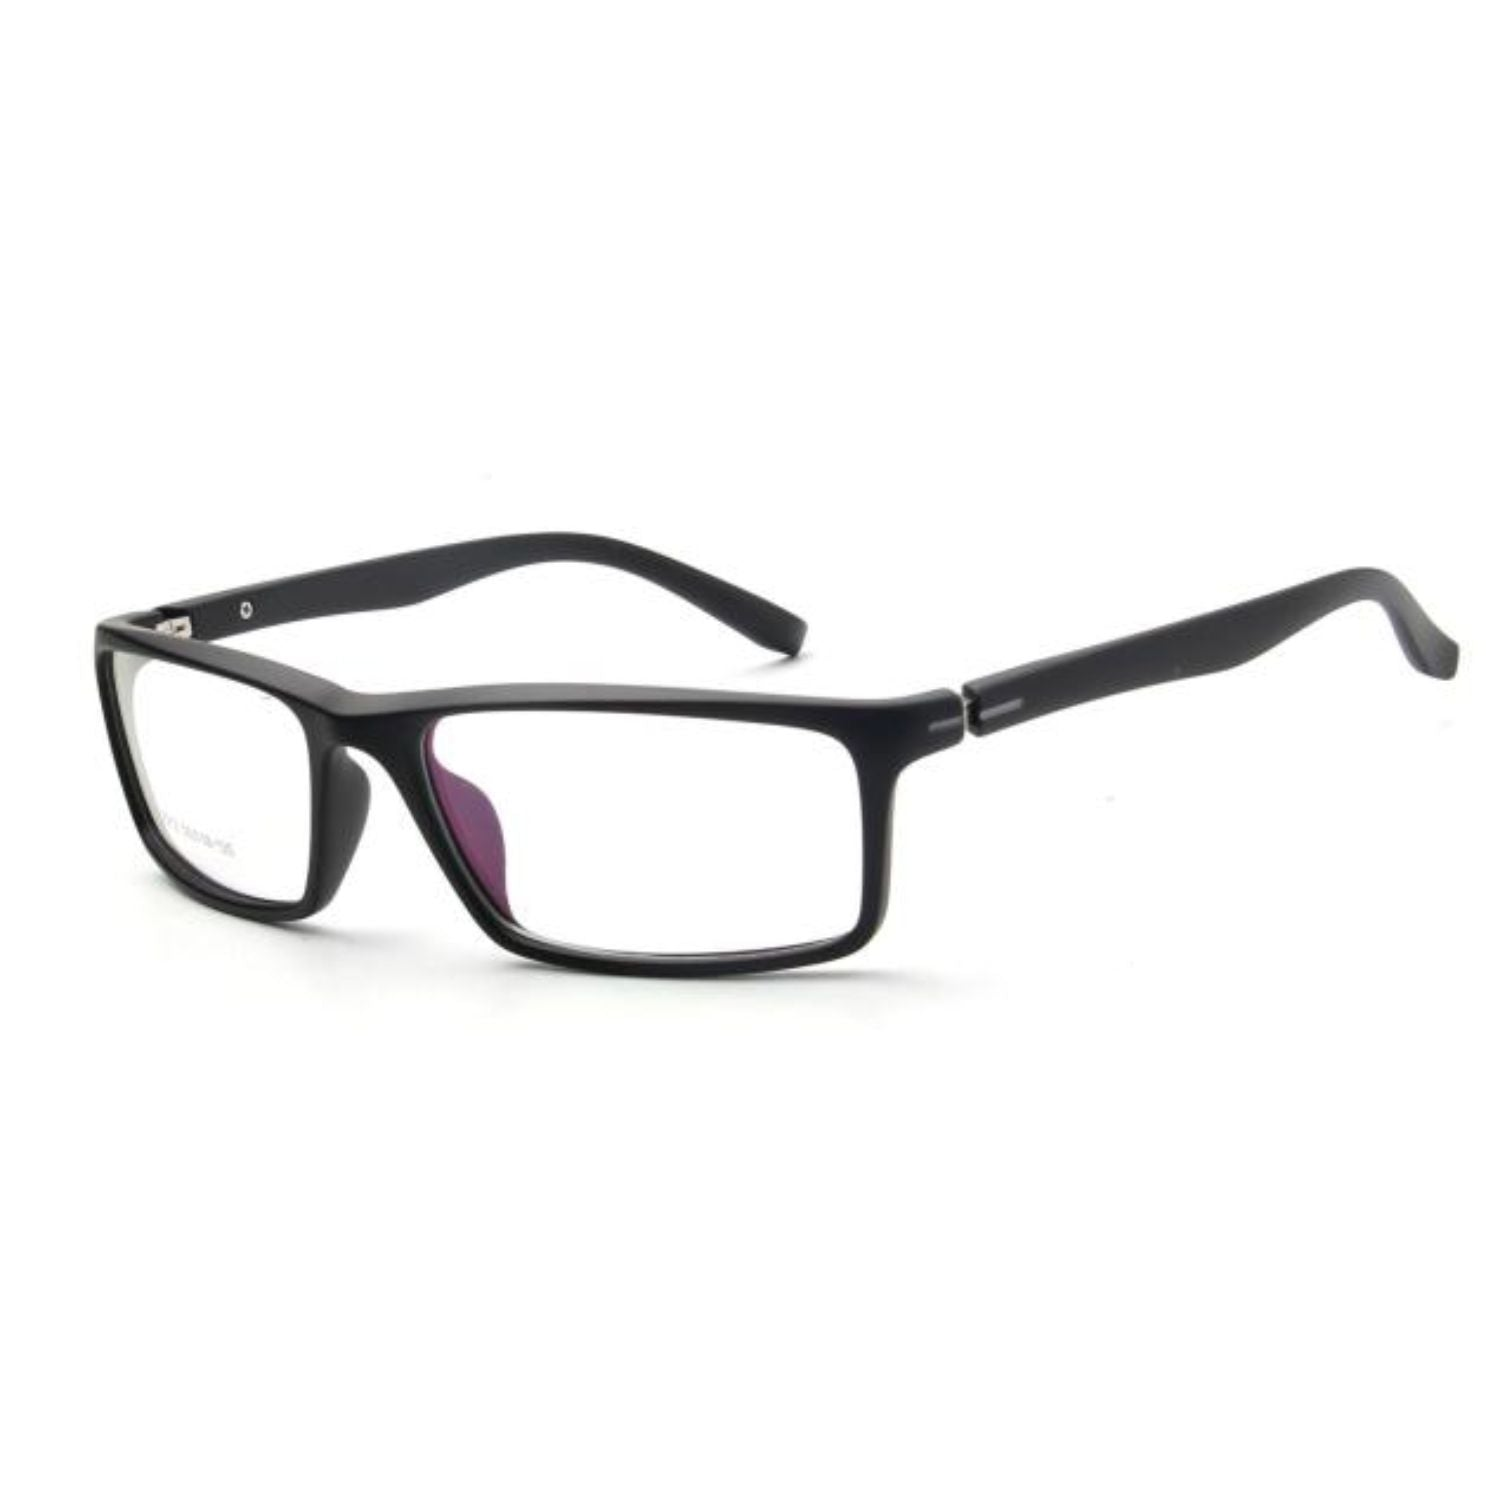 OTR9 - Men Classic Rectangle Optical Glasses